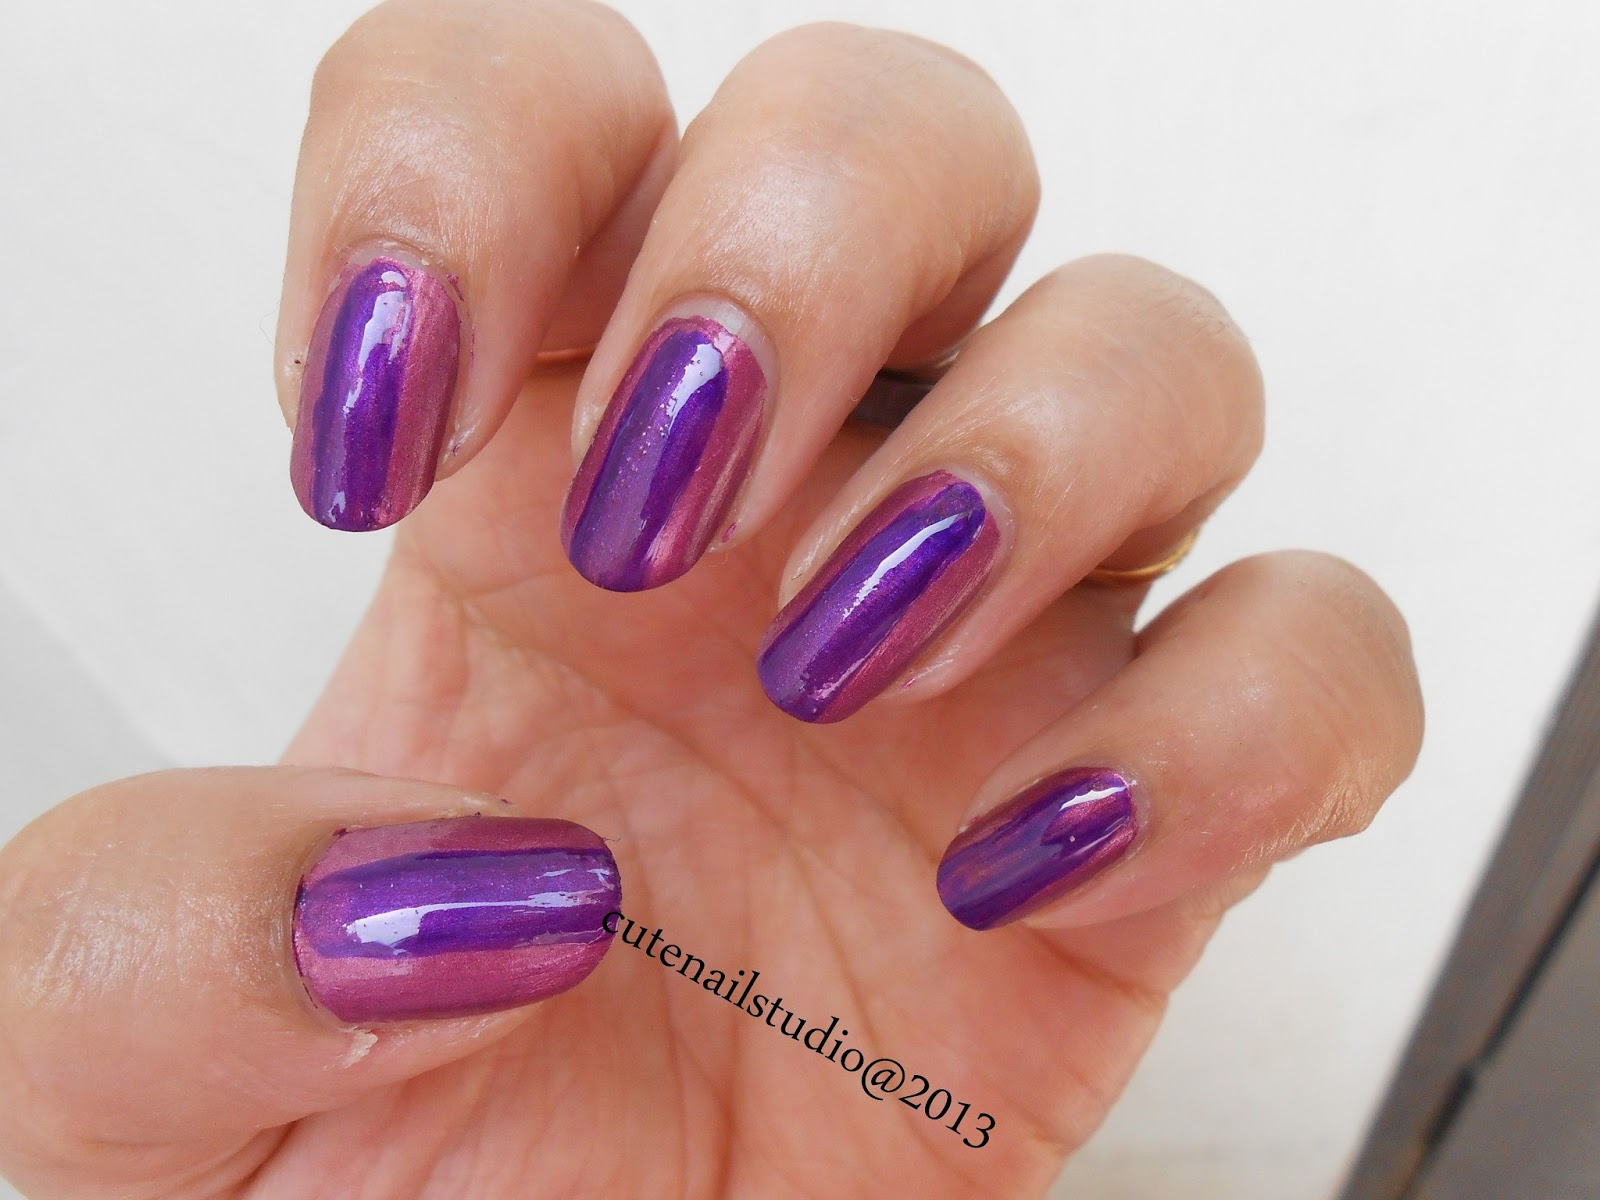 Cute nails: Barry M Chameleon Colour Changing Nail Effects : pink